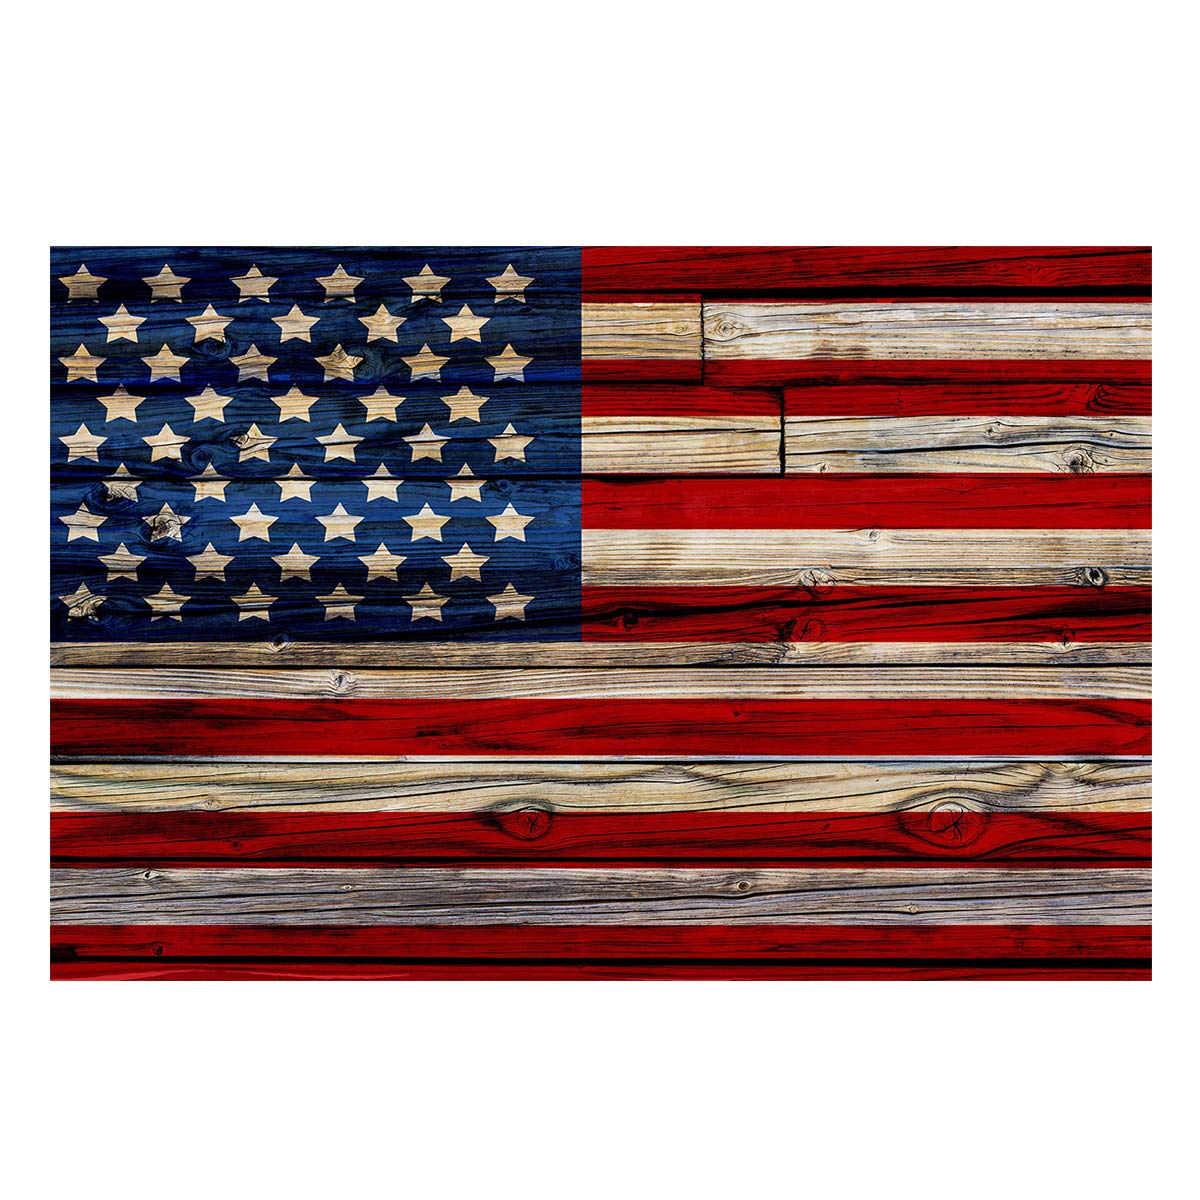 Fantasy Star Aquarium Background American Flag Fish Tank Wallpaper Easy to Apply and Remove PVC Sticker Pictures Poster Background Decoration 24.4'' x 36.4'' by Fantasy Star